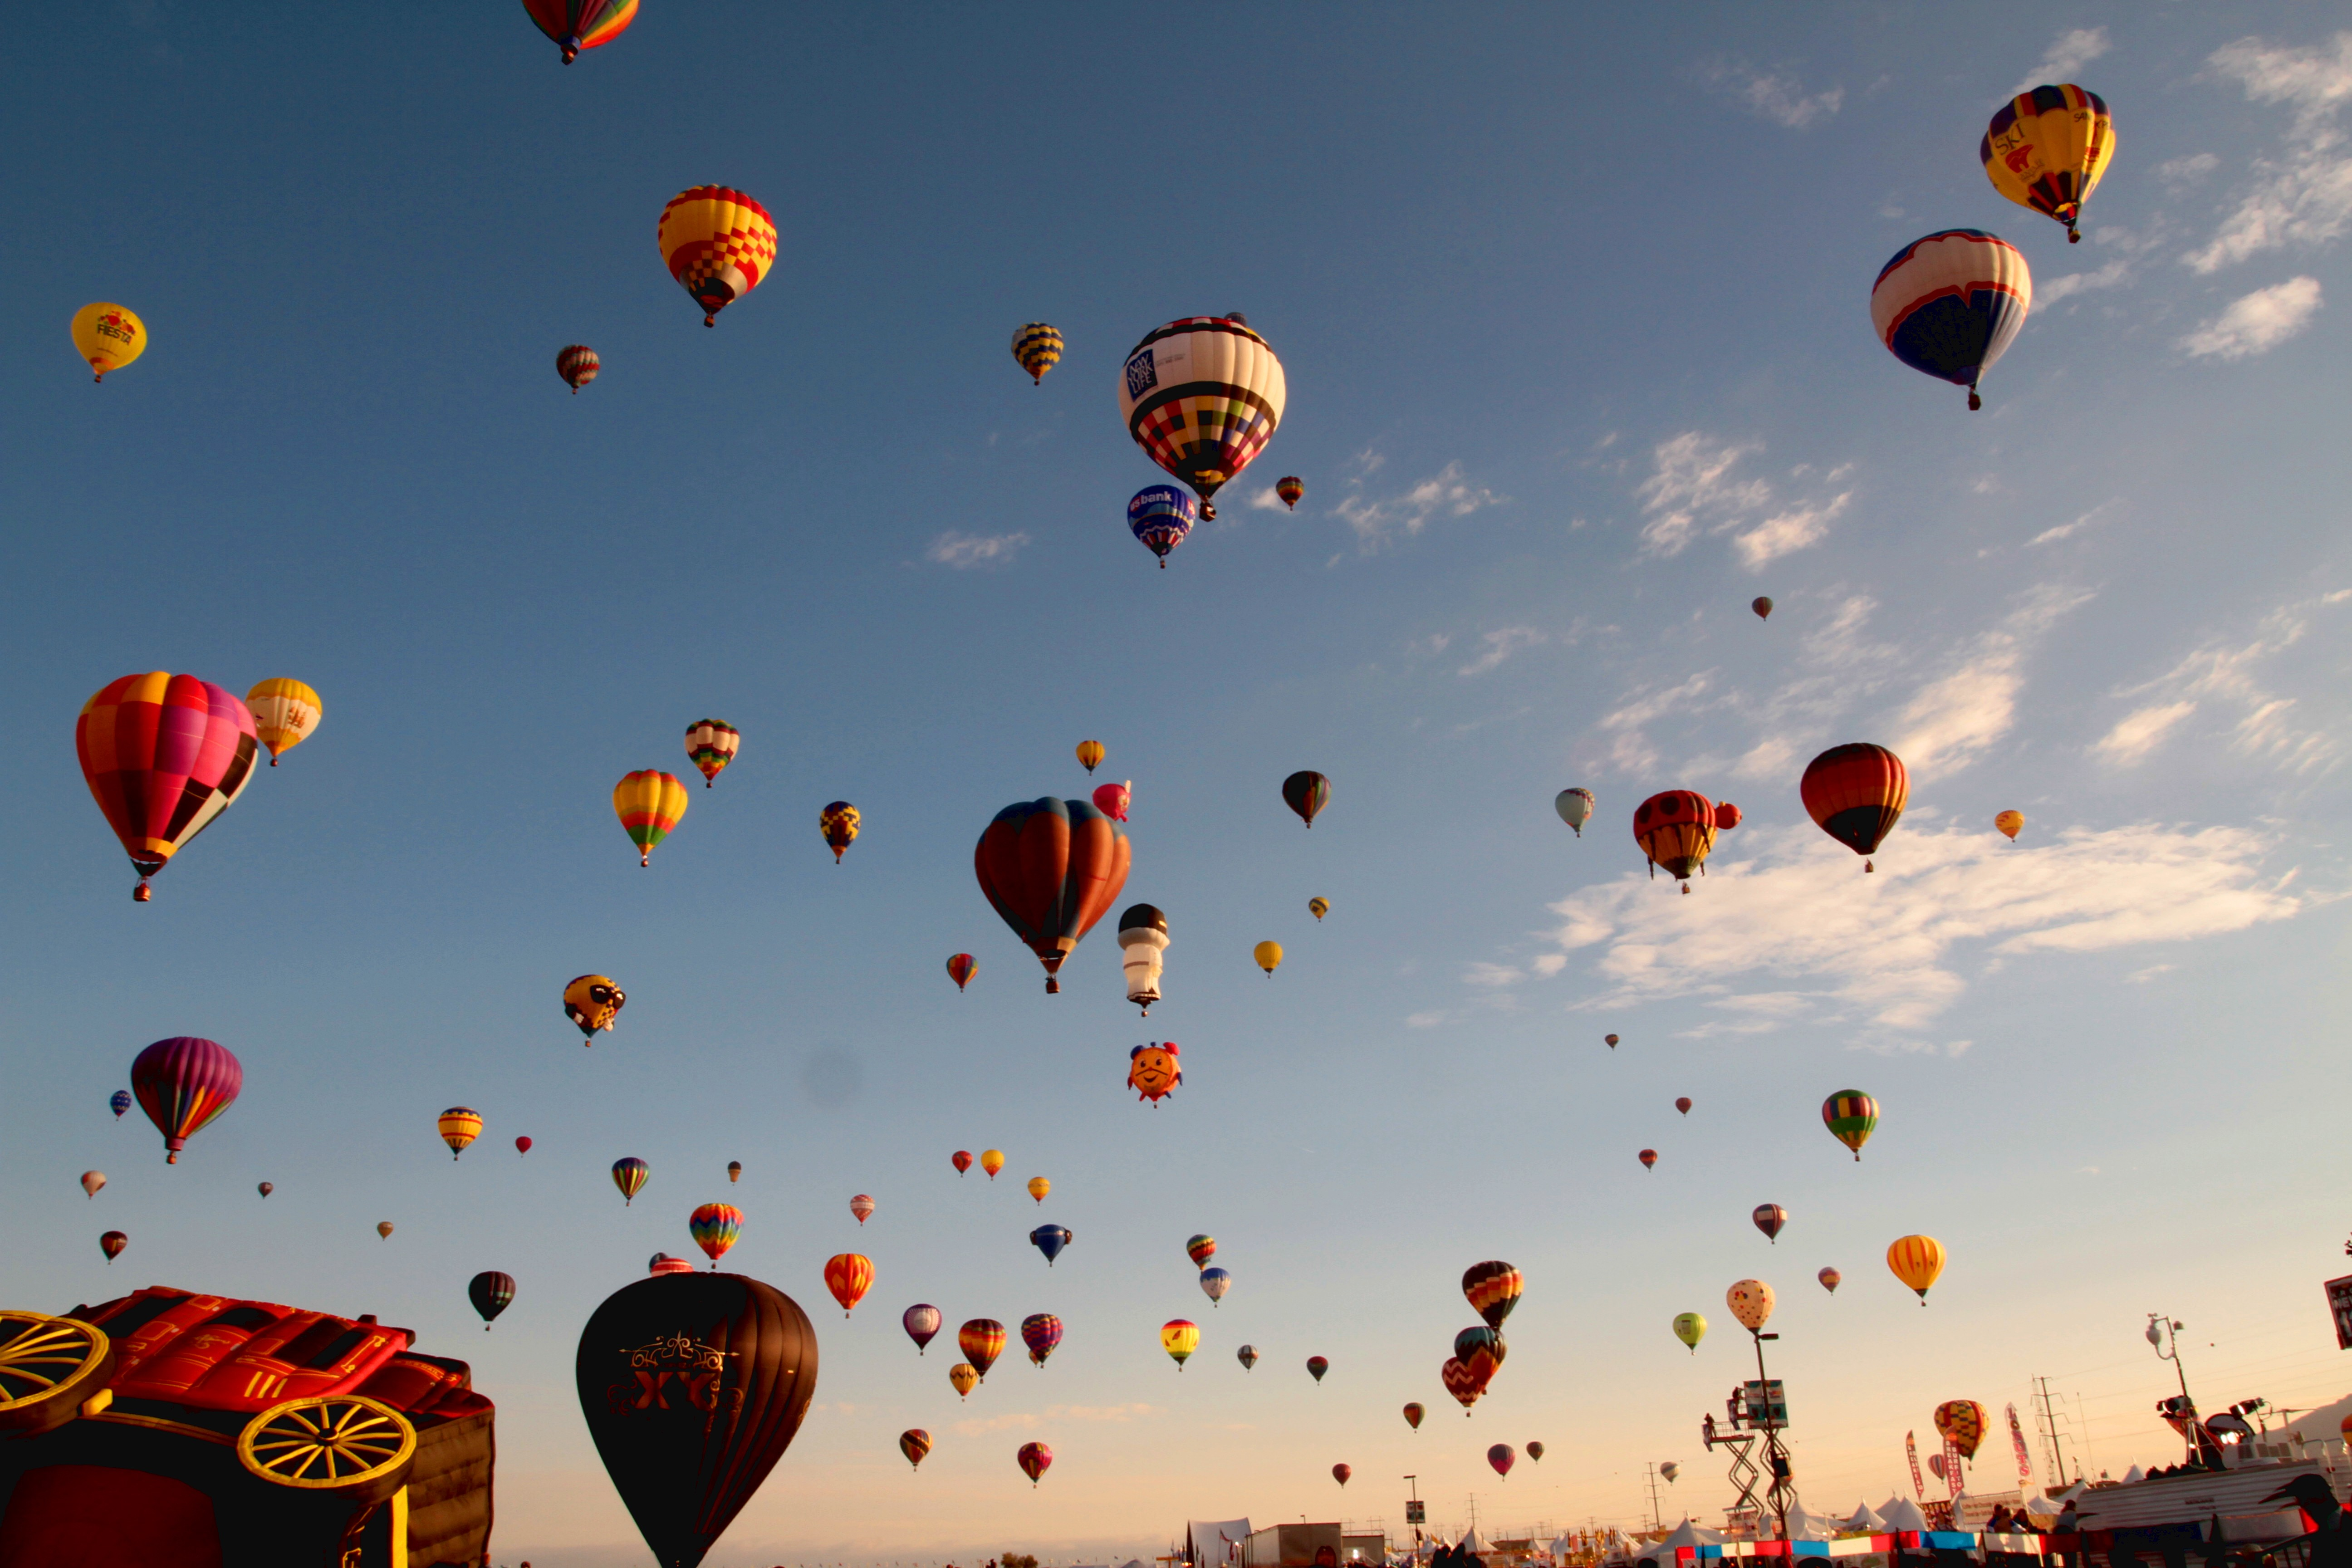 How To Make 3d Wallpaper Lots Of Balloons In The Sky Implicit Self